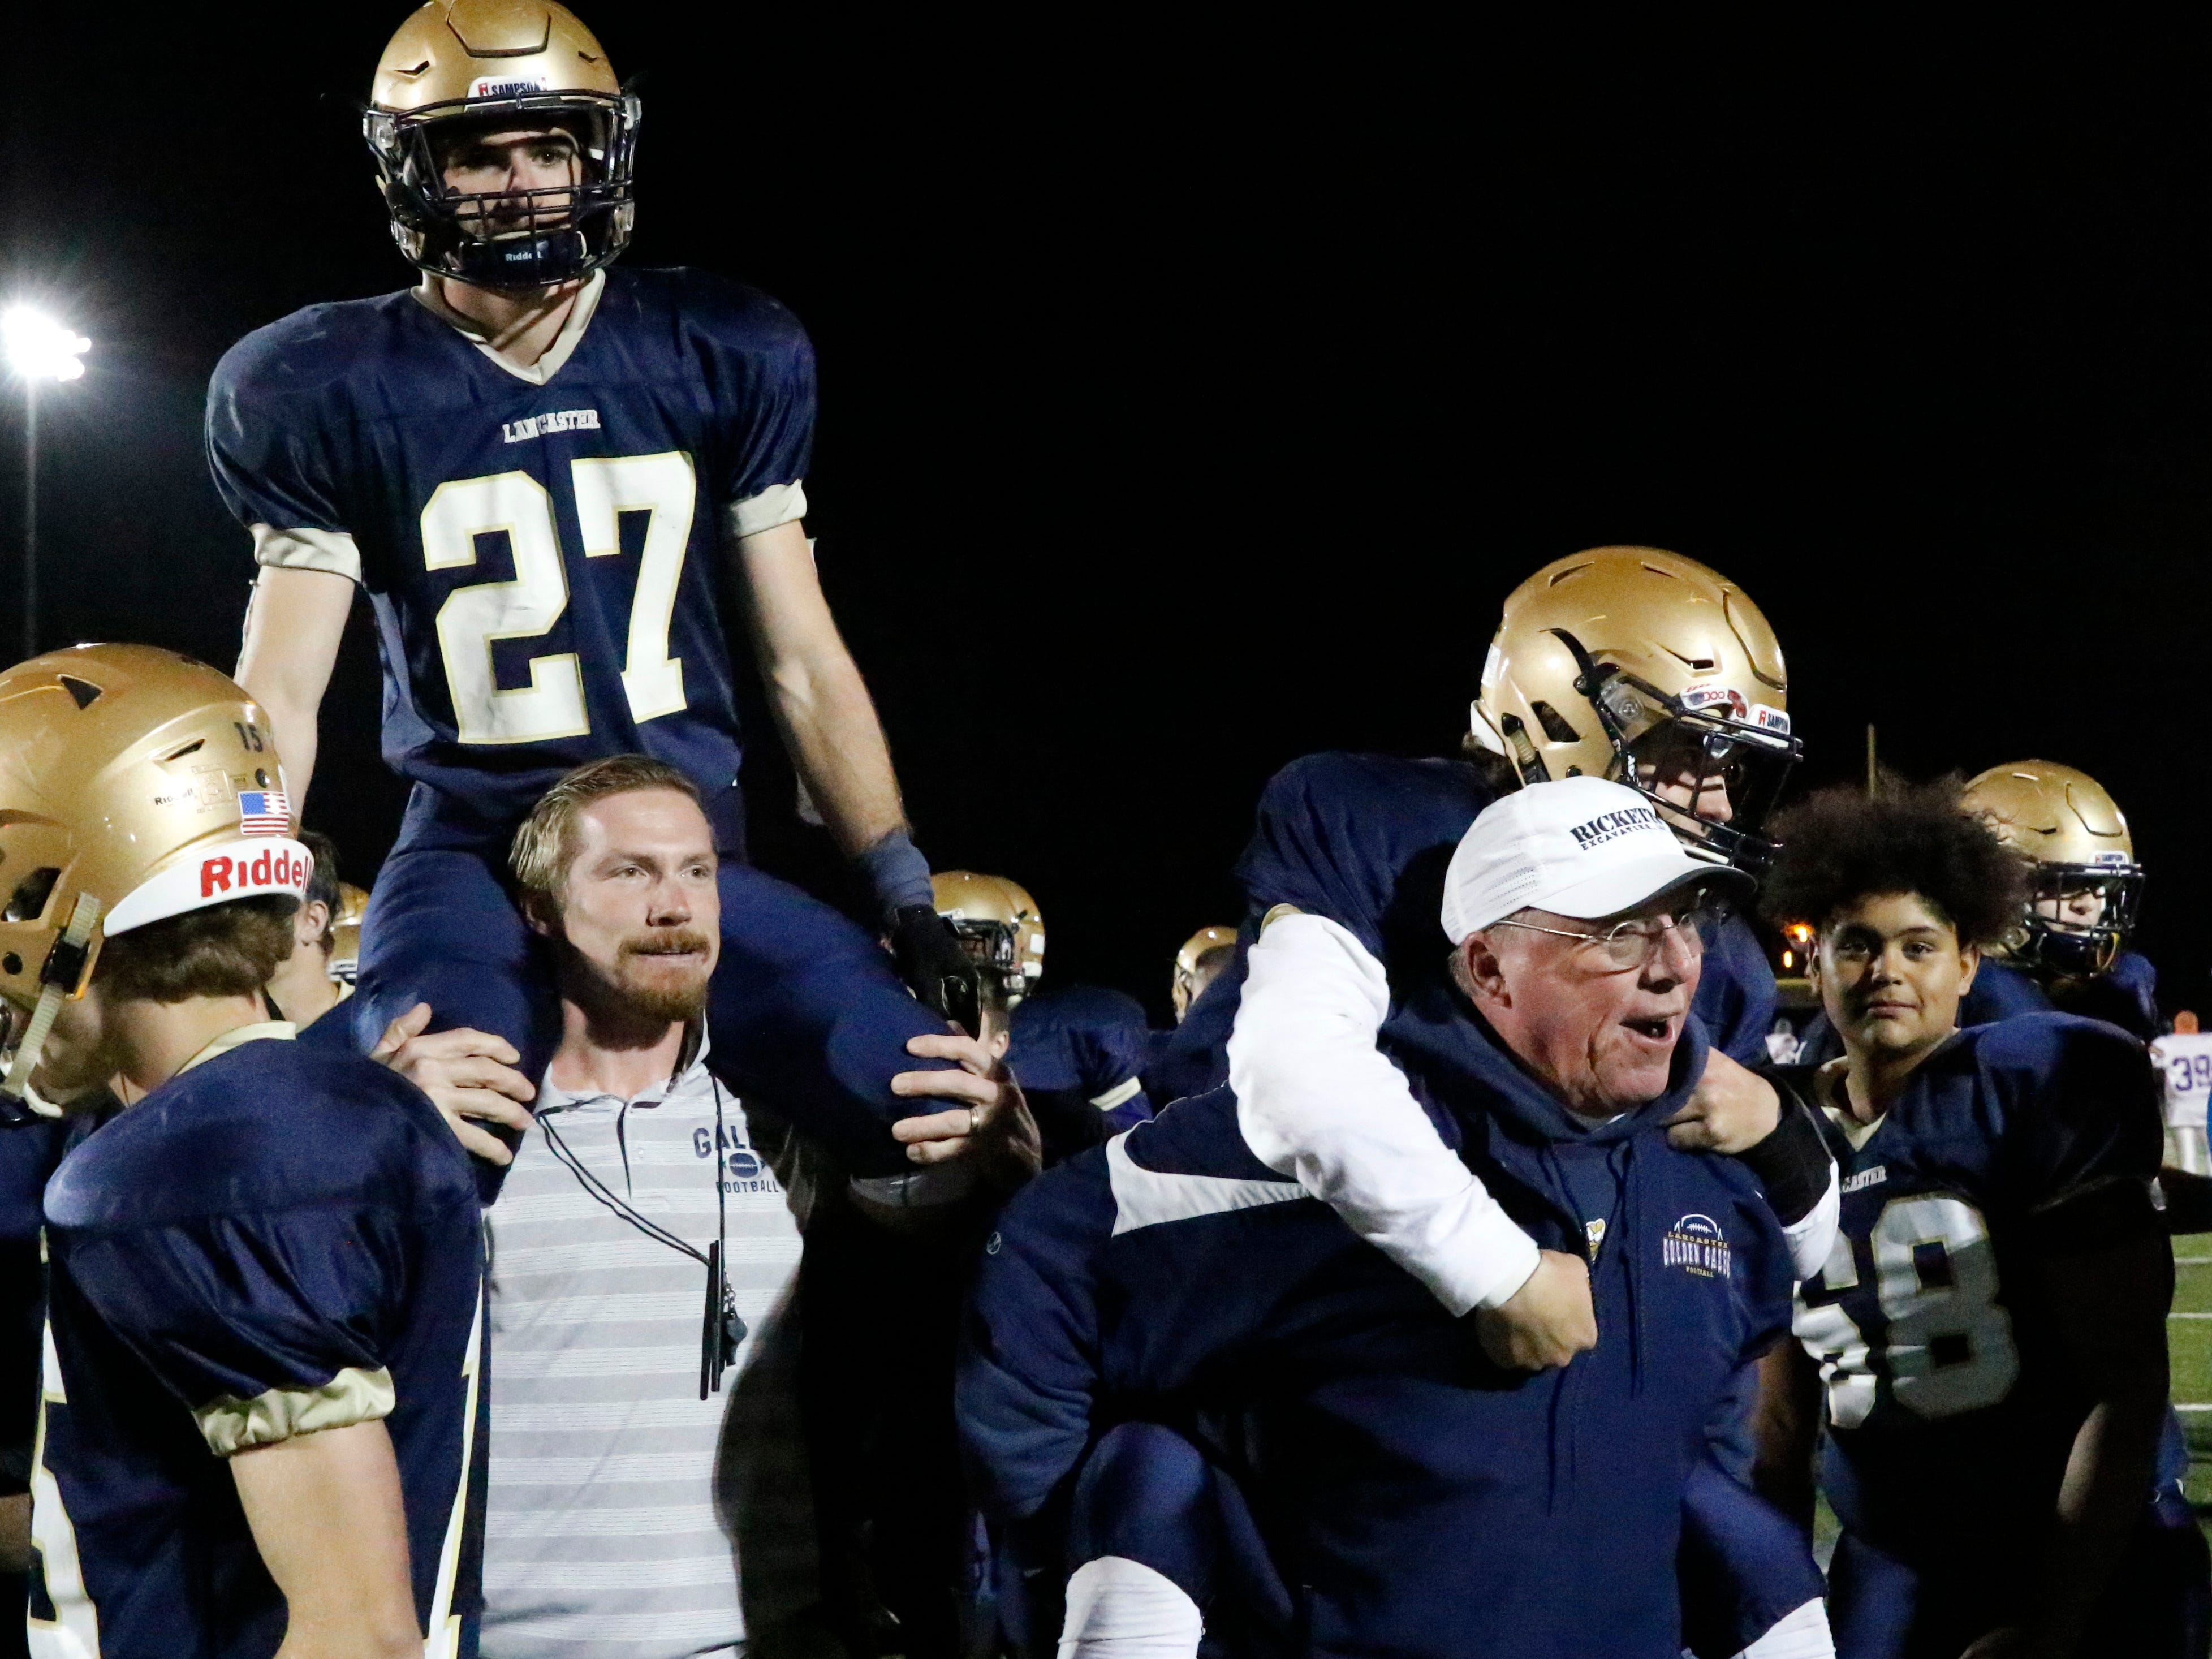 Lancaster football coach Rob Carpenter, right, carries senior Tyler Monk off the field on his back while assistant coach Jon Carpenter carries senior A.J. Cook after Thursday night's game, Oct. 25, 2018, at Fulton Field in Lancaster. The Golden Gales lost the game, 28-7 to Reynoldsburg. The teams ended the regular season as co-champions of the Ohio Capital Conference-Ohio Division.